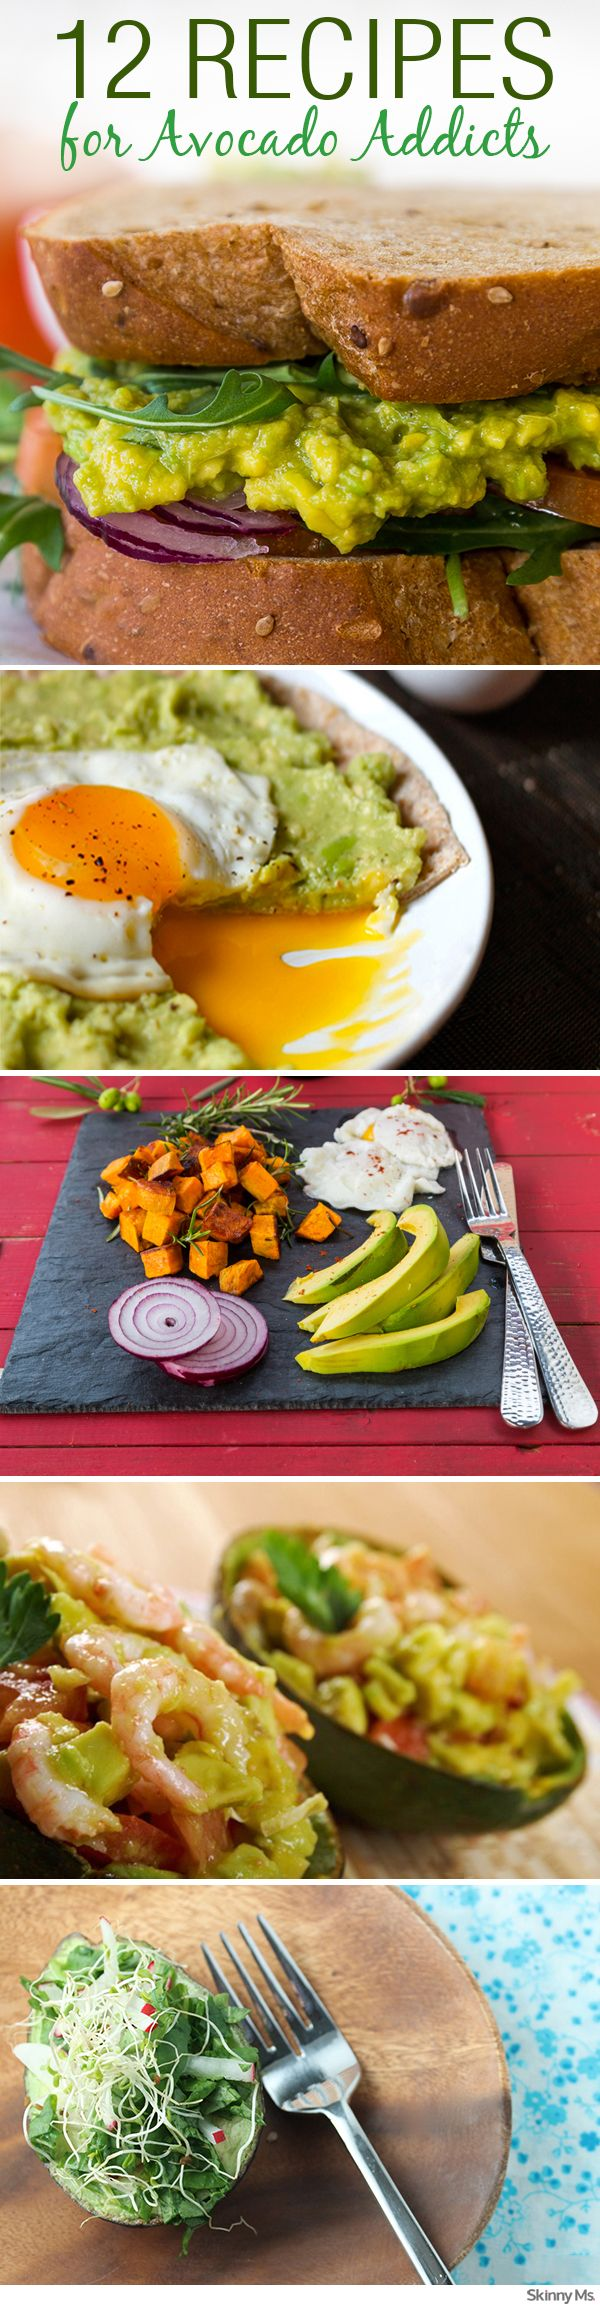 12 different ways for avocado addicts to get a fix! #recipes